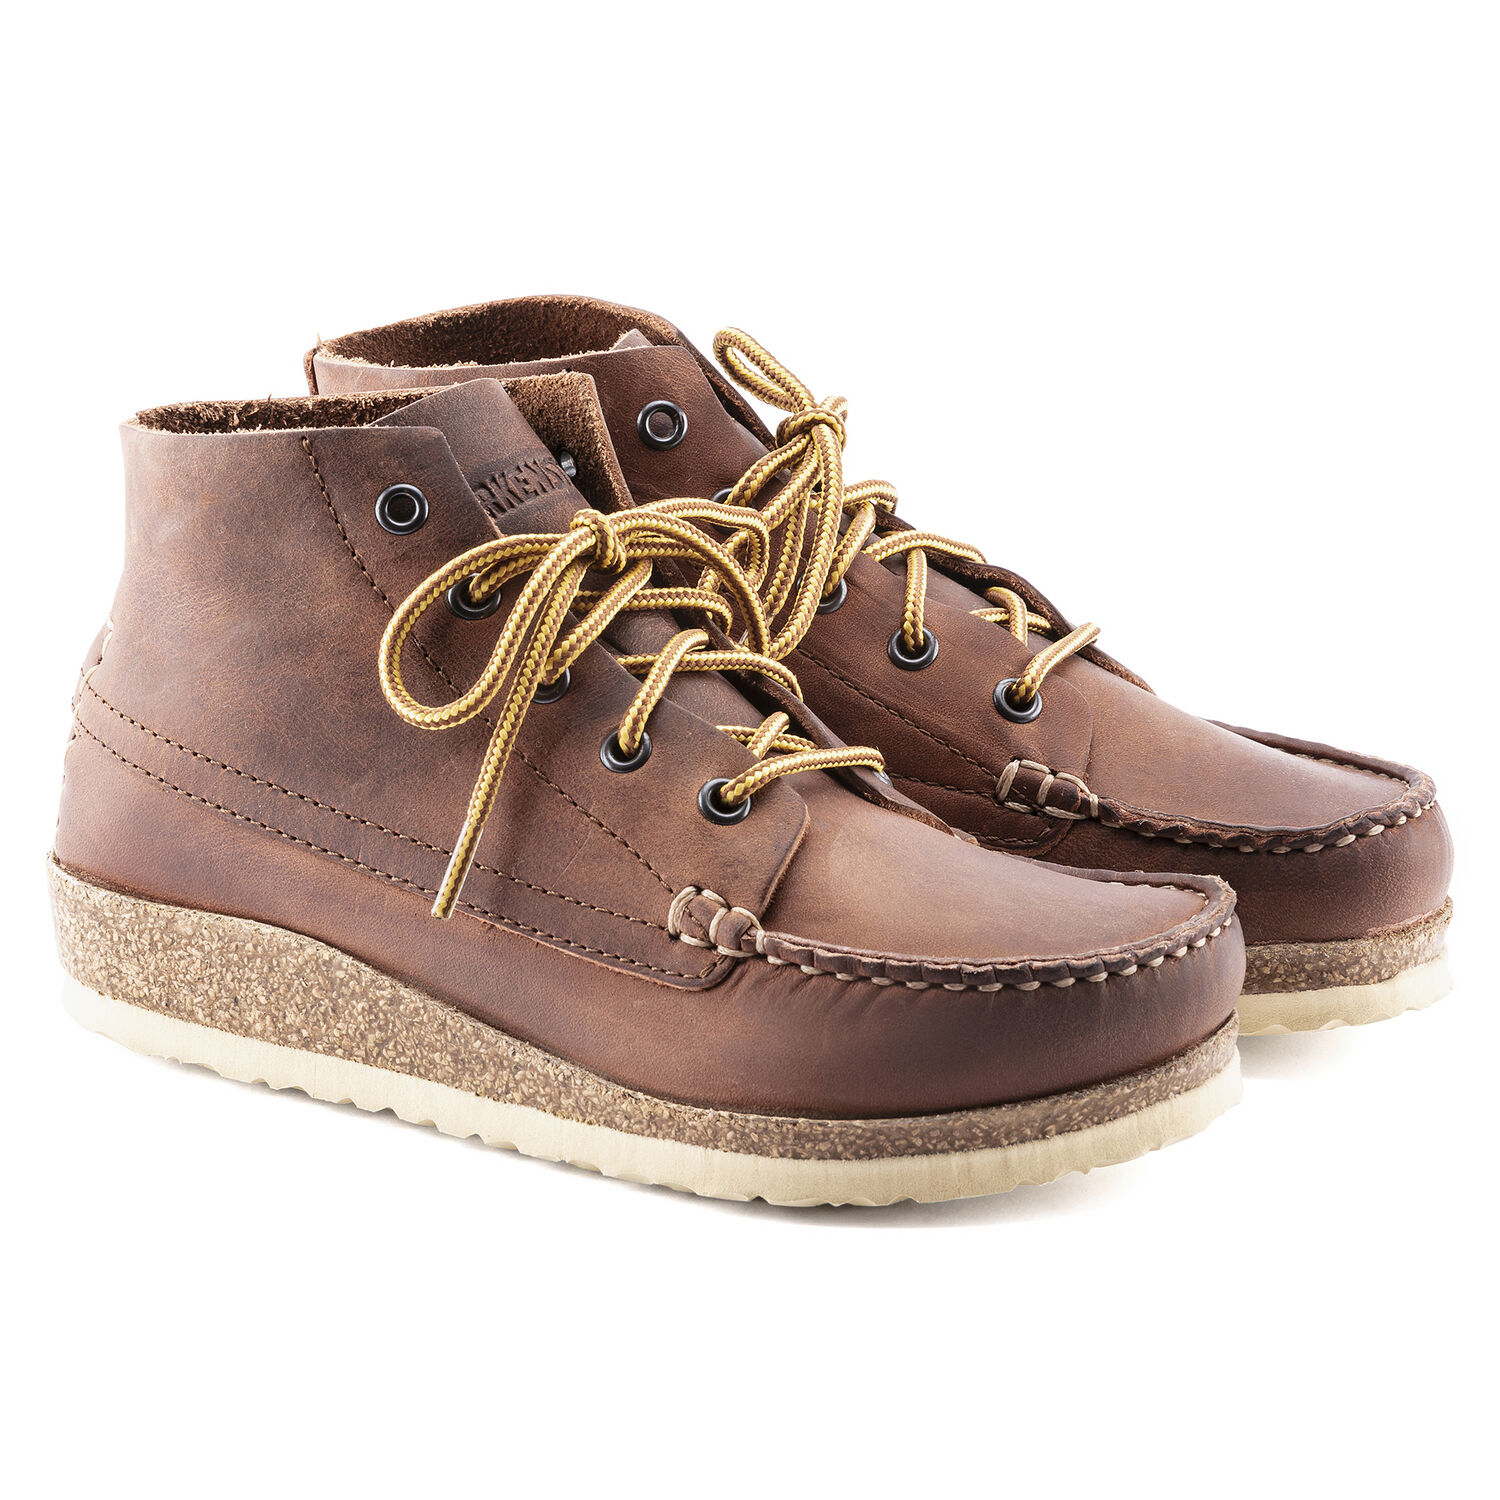 Marton Kids Oiled Leather